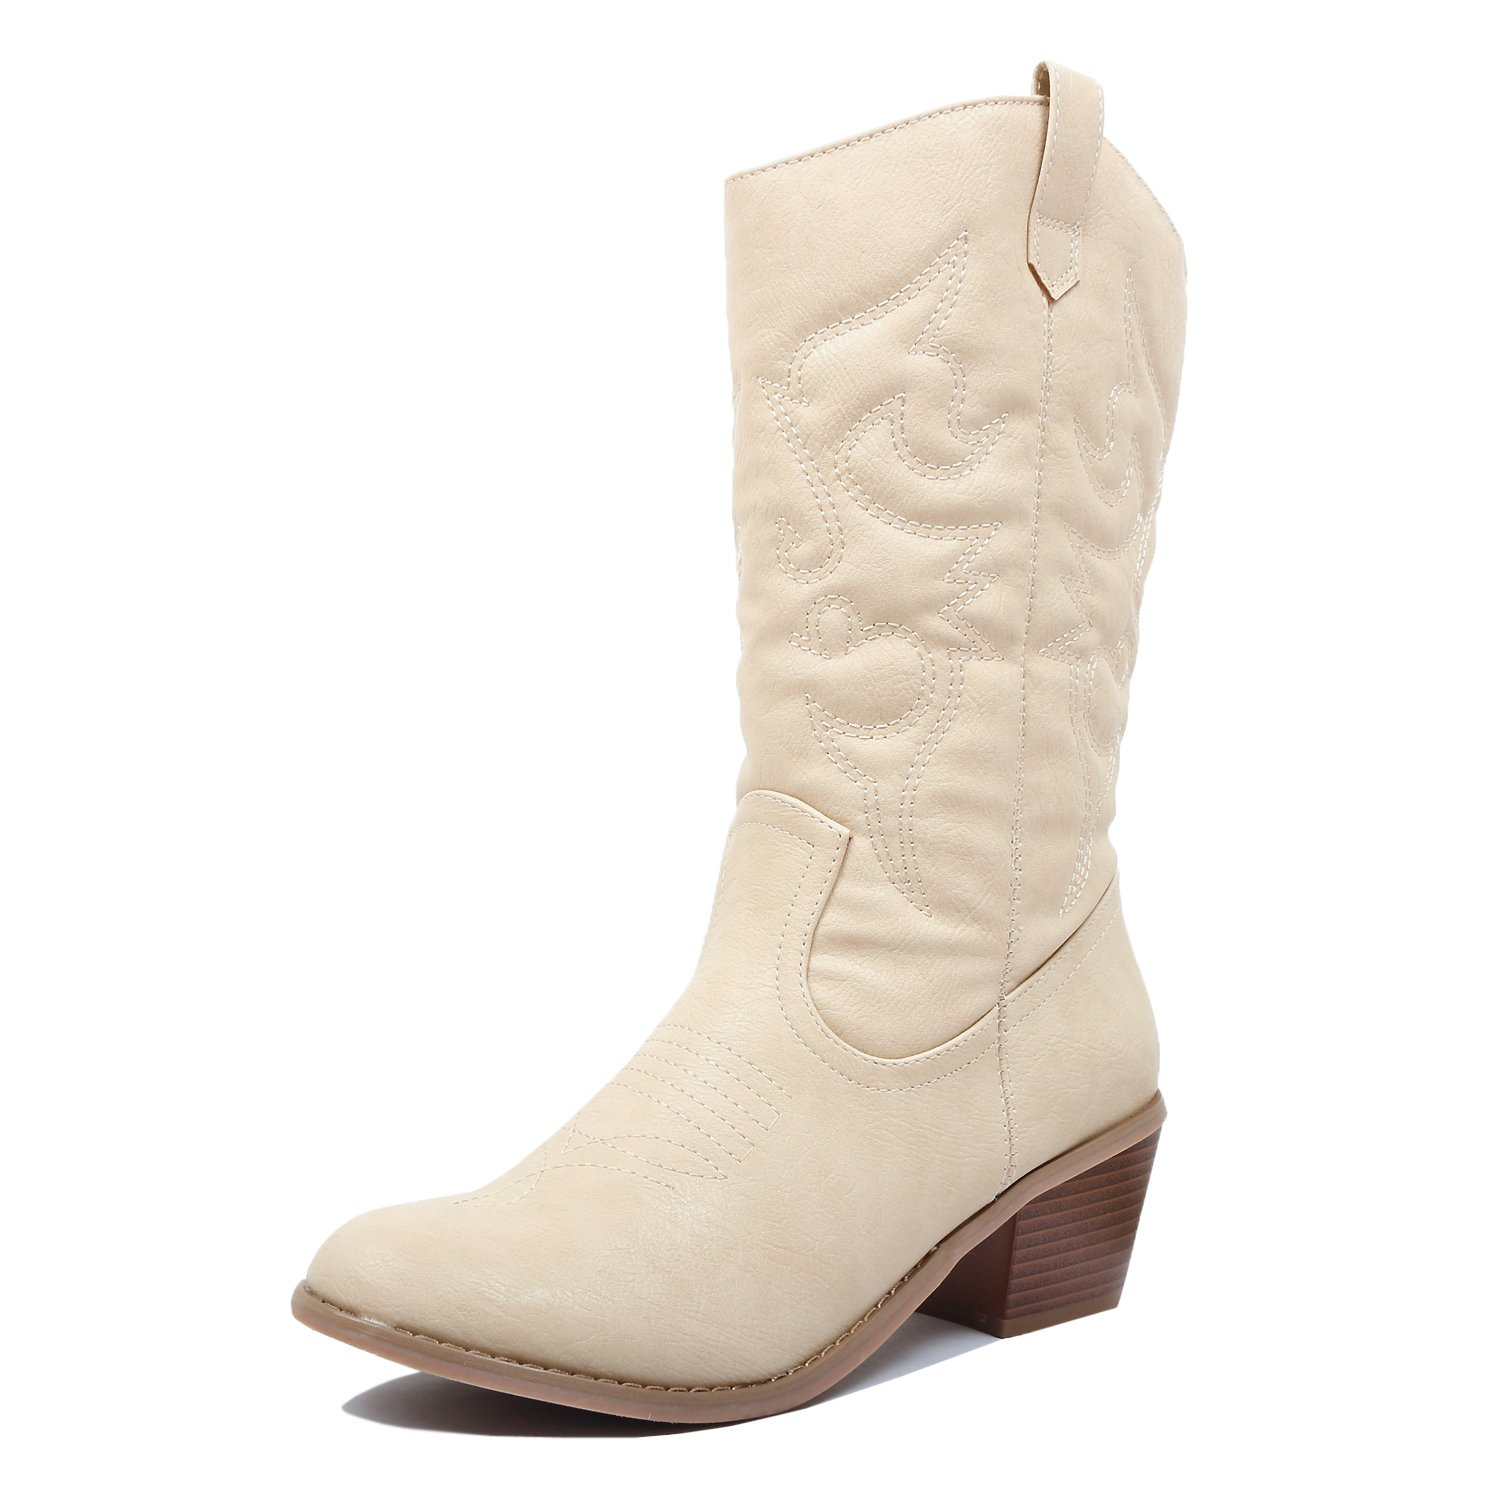 West Blvd Miami Cowboy Western Boots Boots, Beige Pu, 10 (B) M US by West Blvd (Image #2)